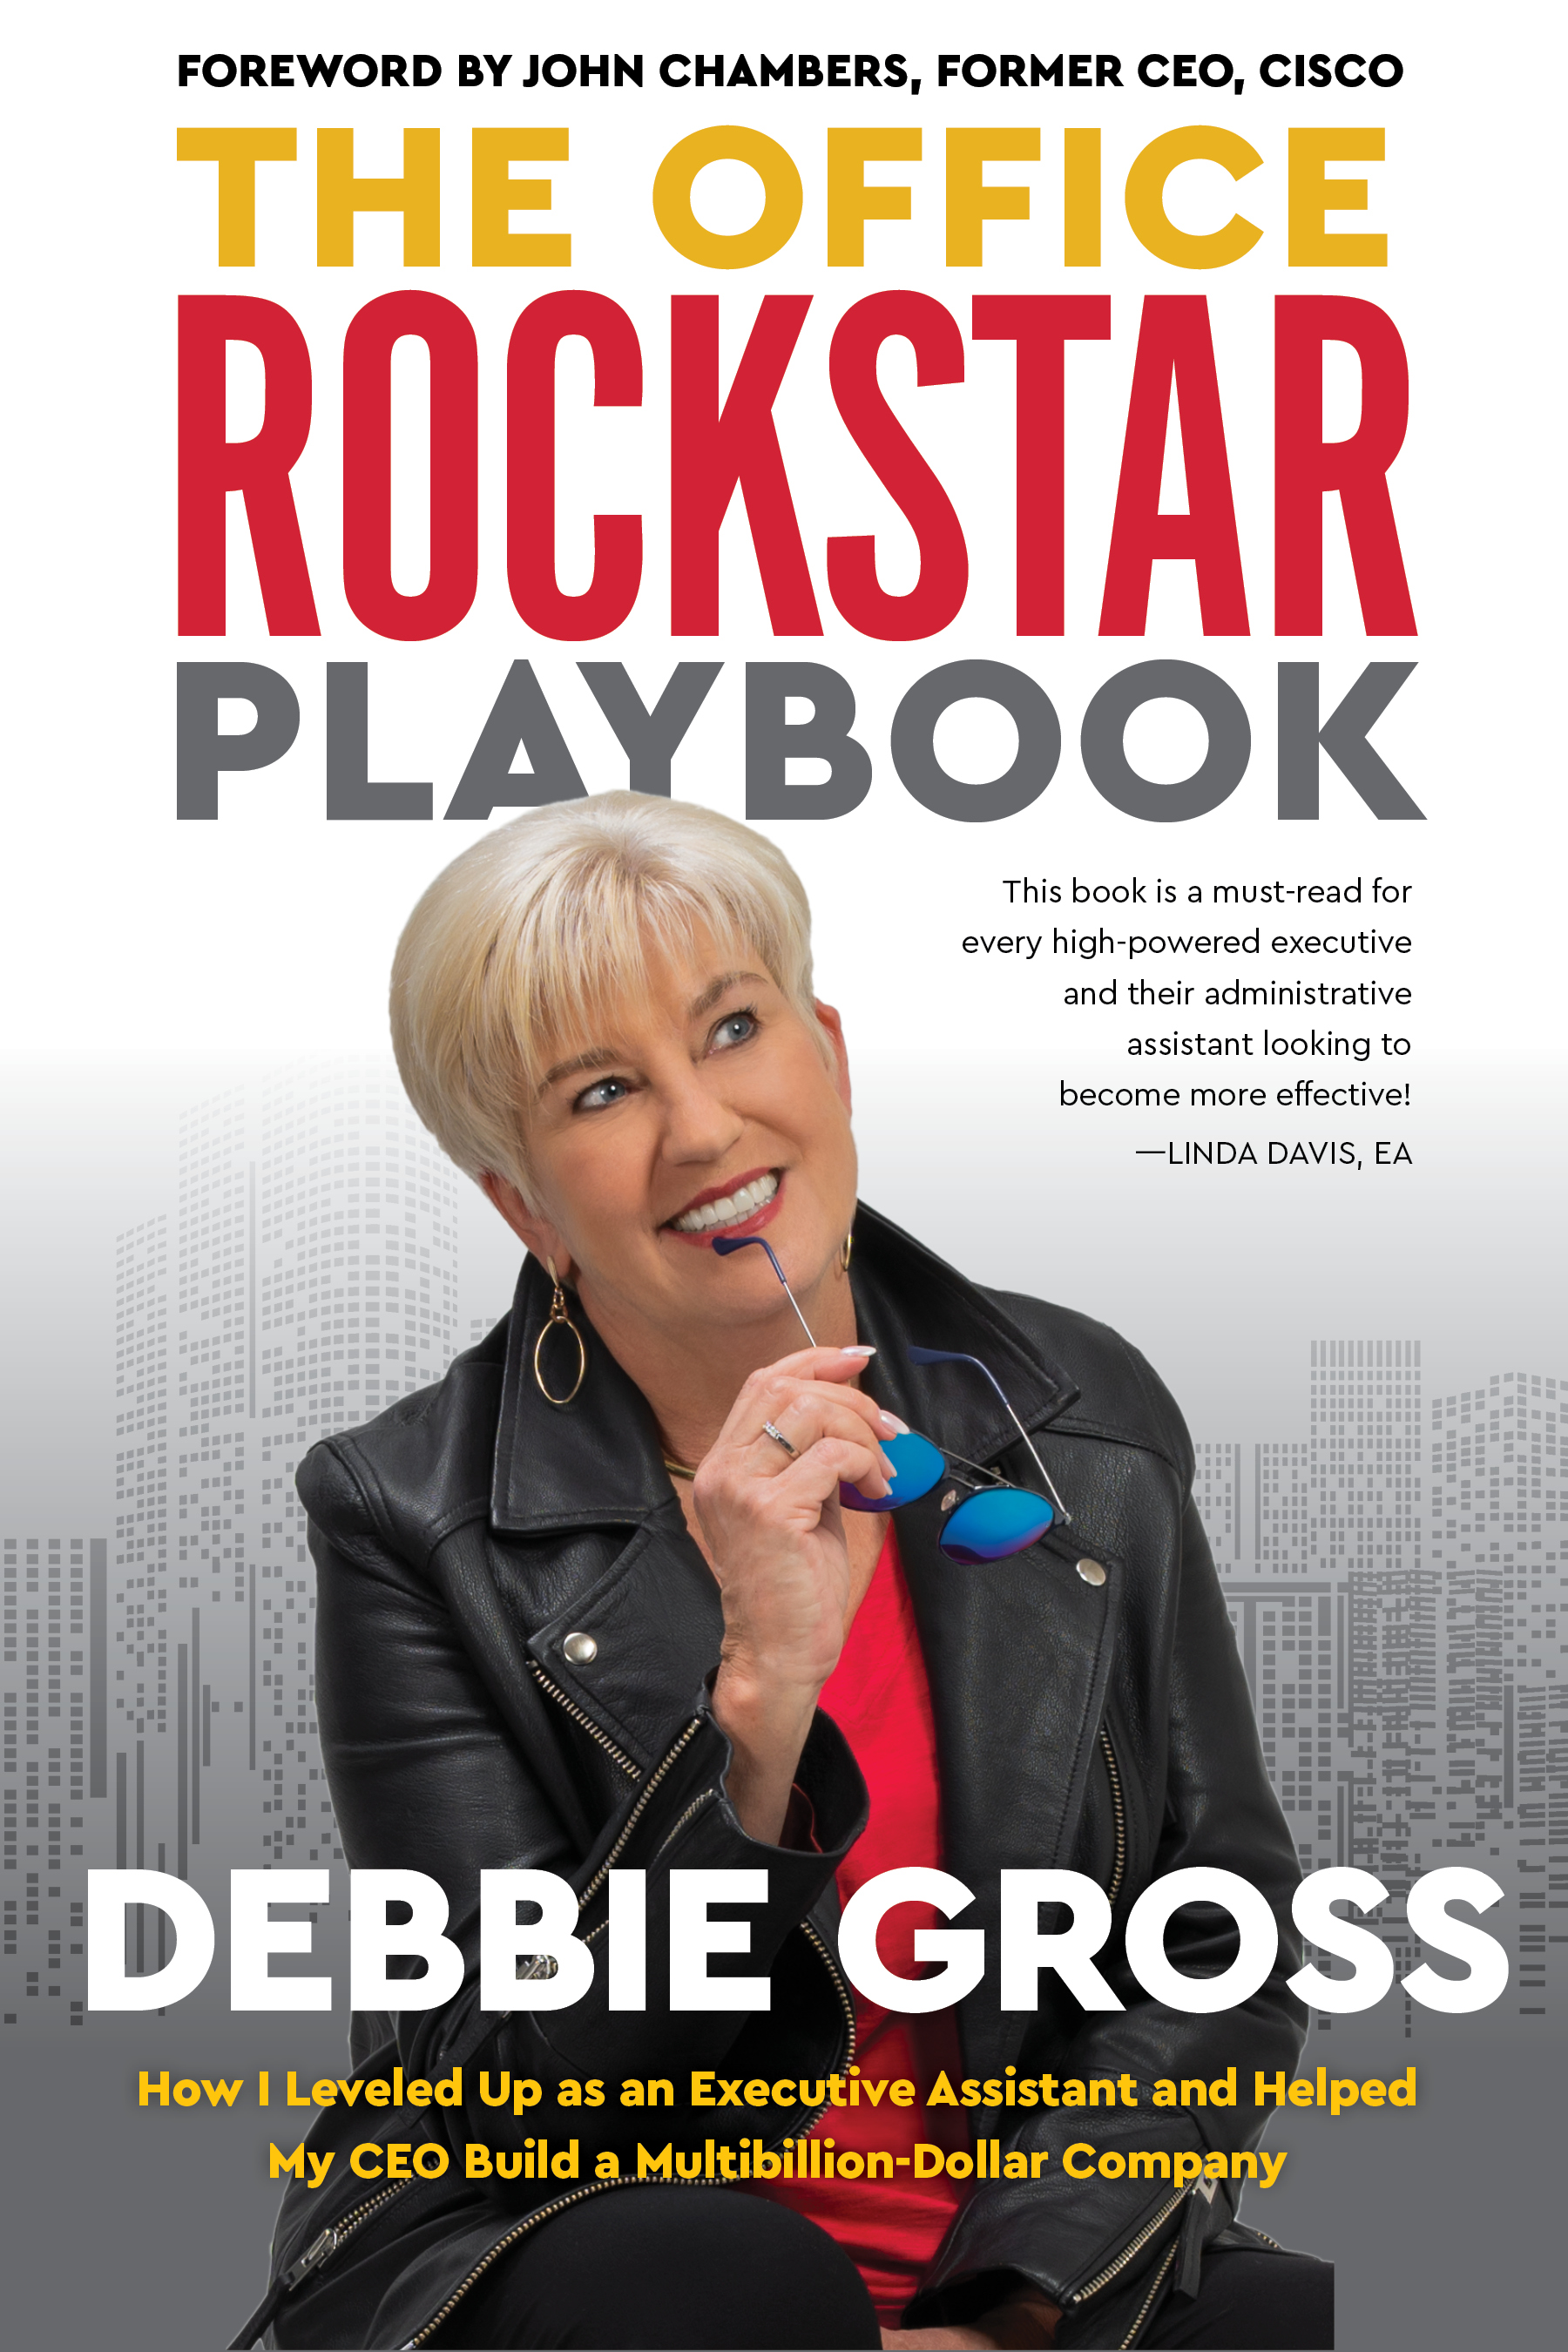 The Office Rockstar Playbook